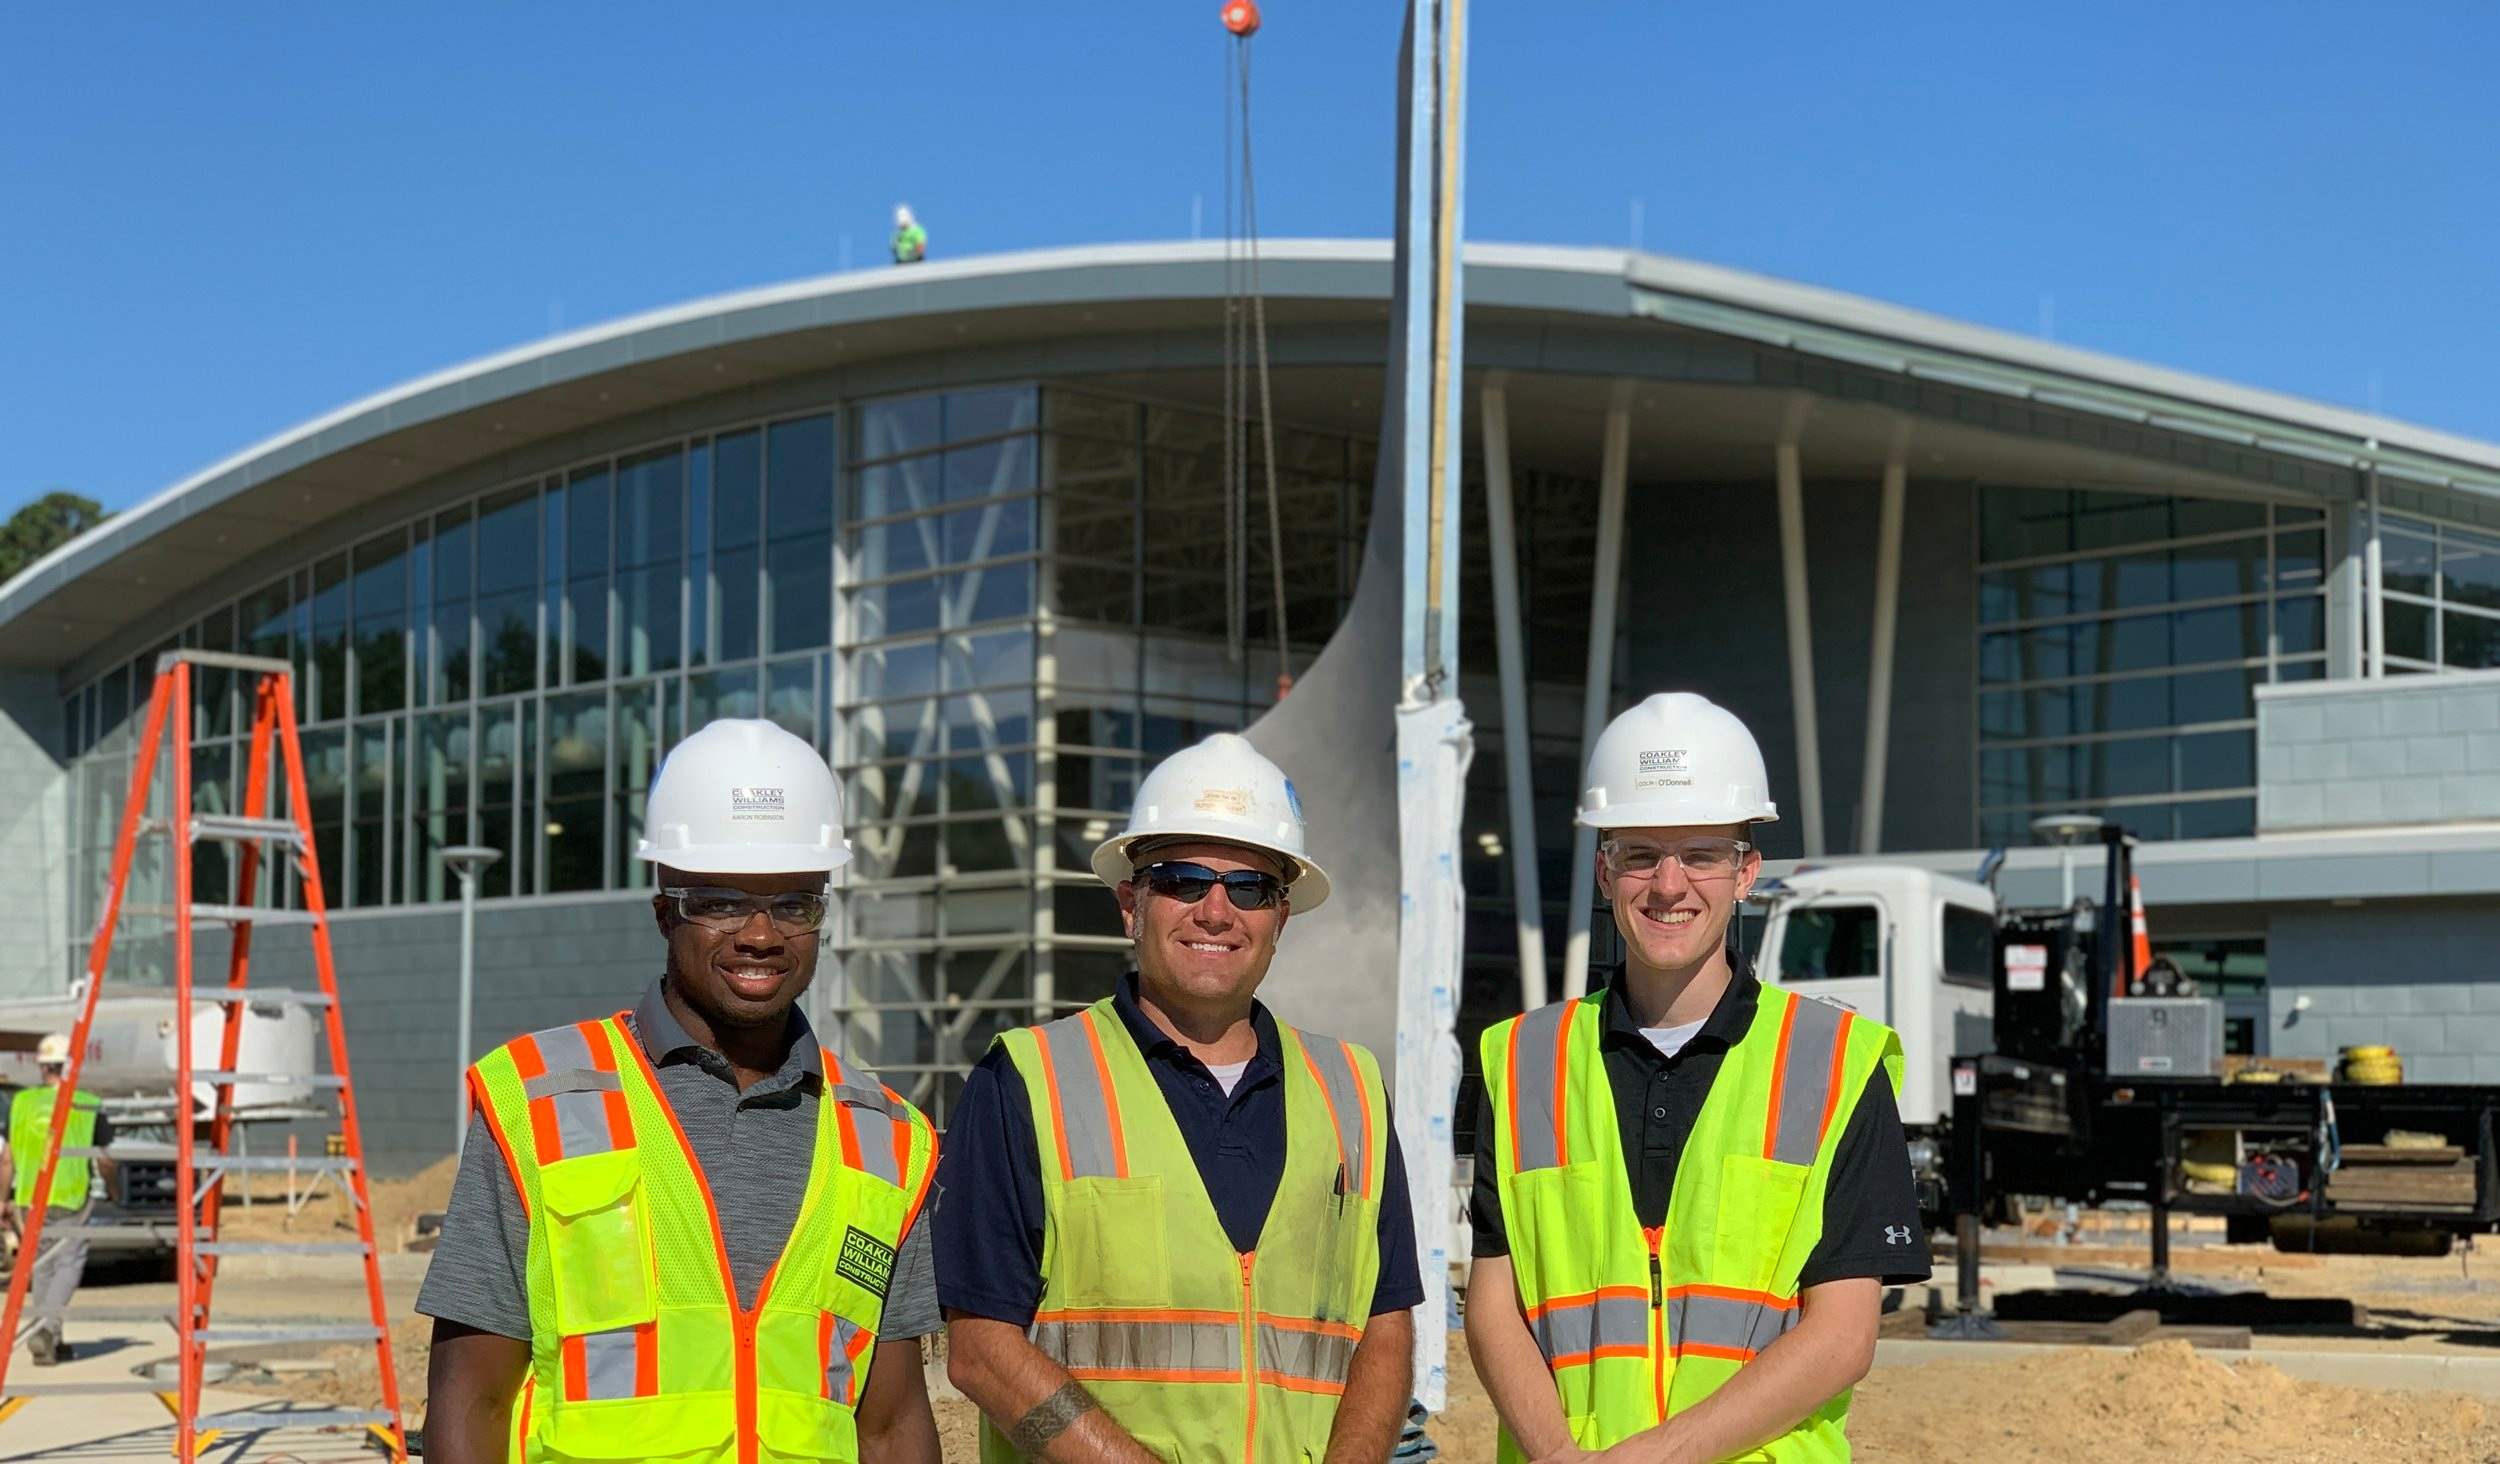 Aaron Robinson, Intern (left), John Raum, Superintendent (middle), and Colin O'Donnell, Project Engineer (right)